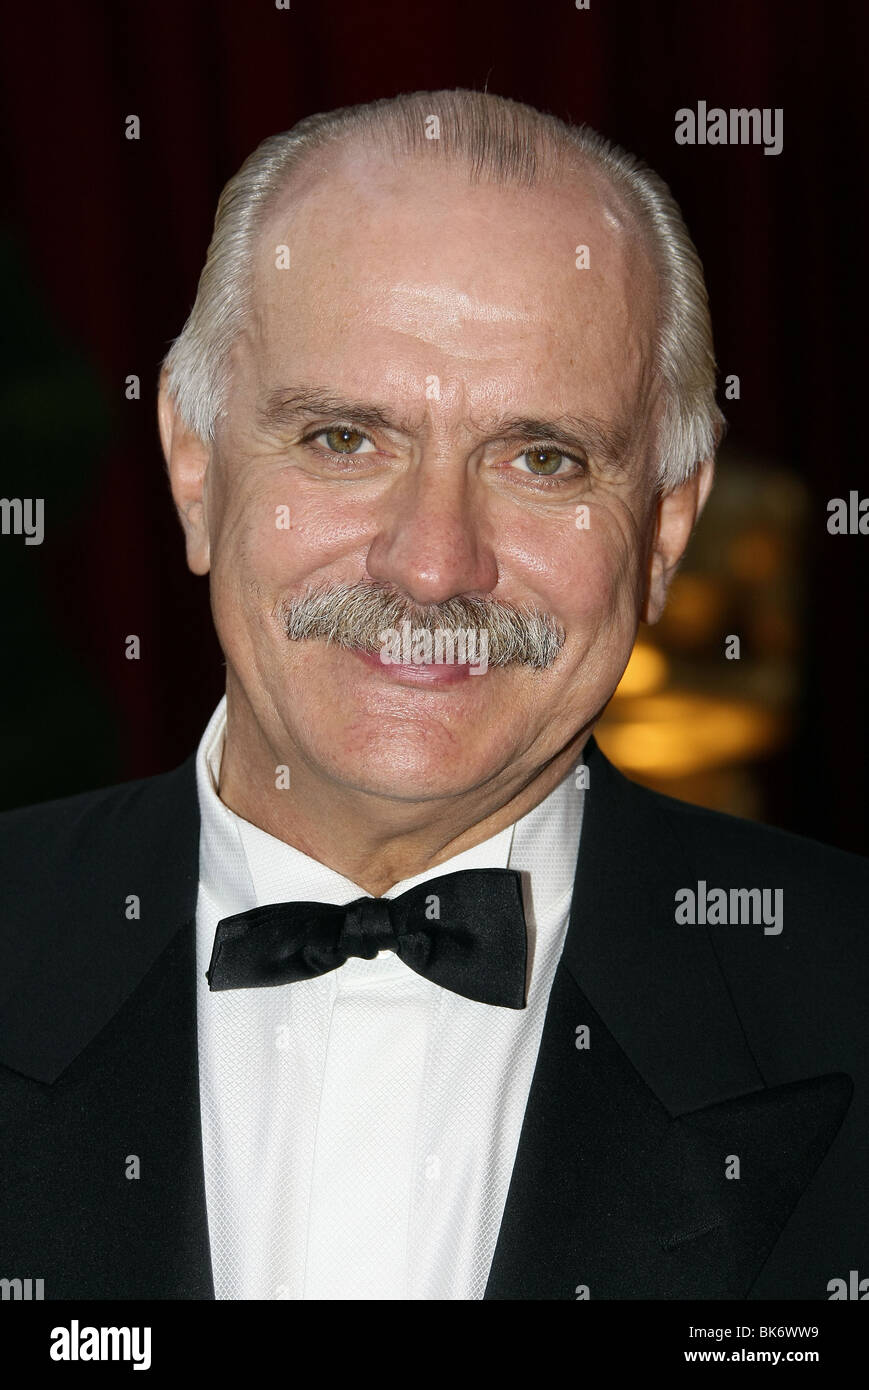 NIKITA MIKHALKOV 80TH ACADEMY AWARDS ARRIVALS HOLLYWOOD LOS ANGELES USA 24 February 2008 - Stock Image